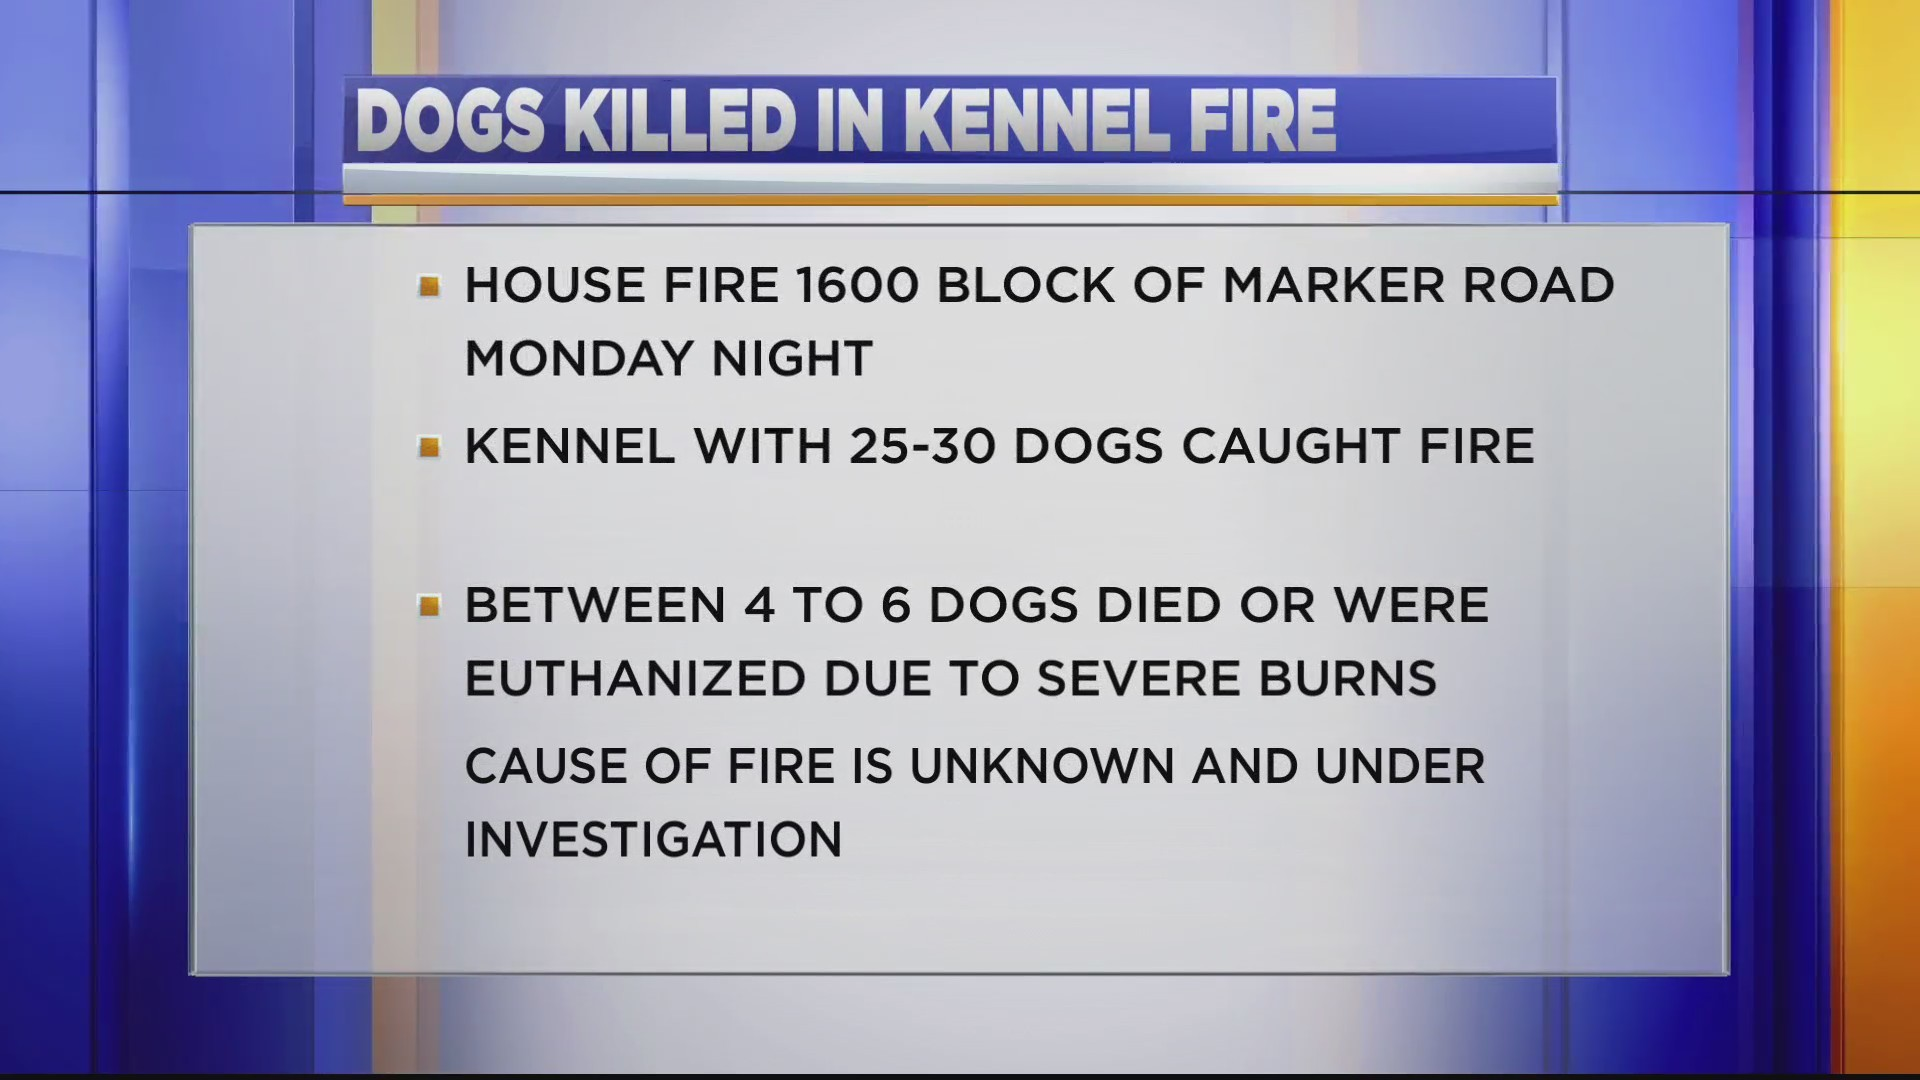 Kennel fire